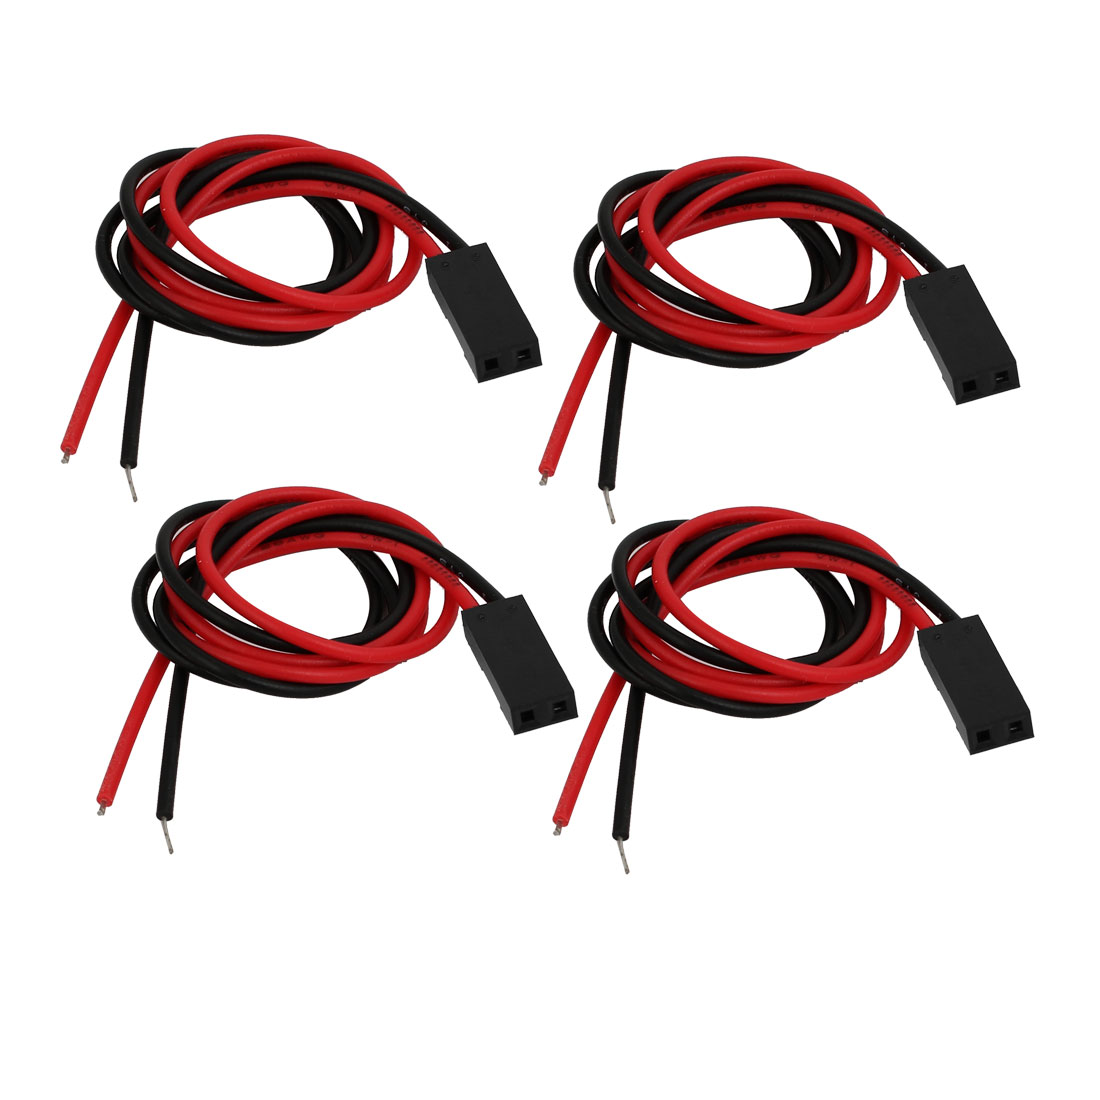 4pcs 2.54mm Ptich 2-Terminal Male Cable Connector Extension Wire 250mm Length